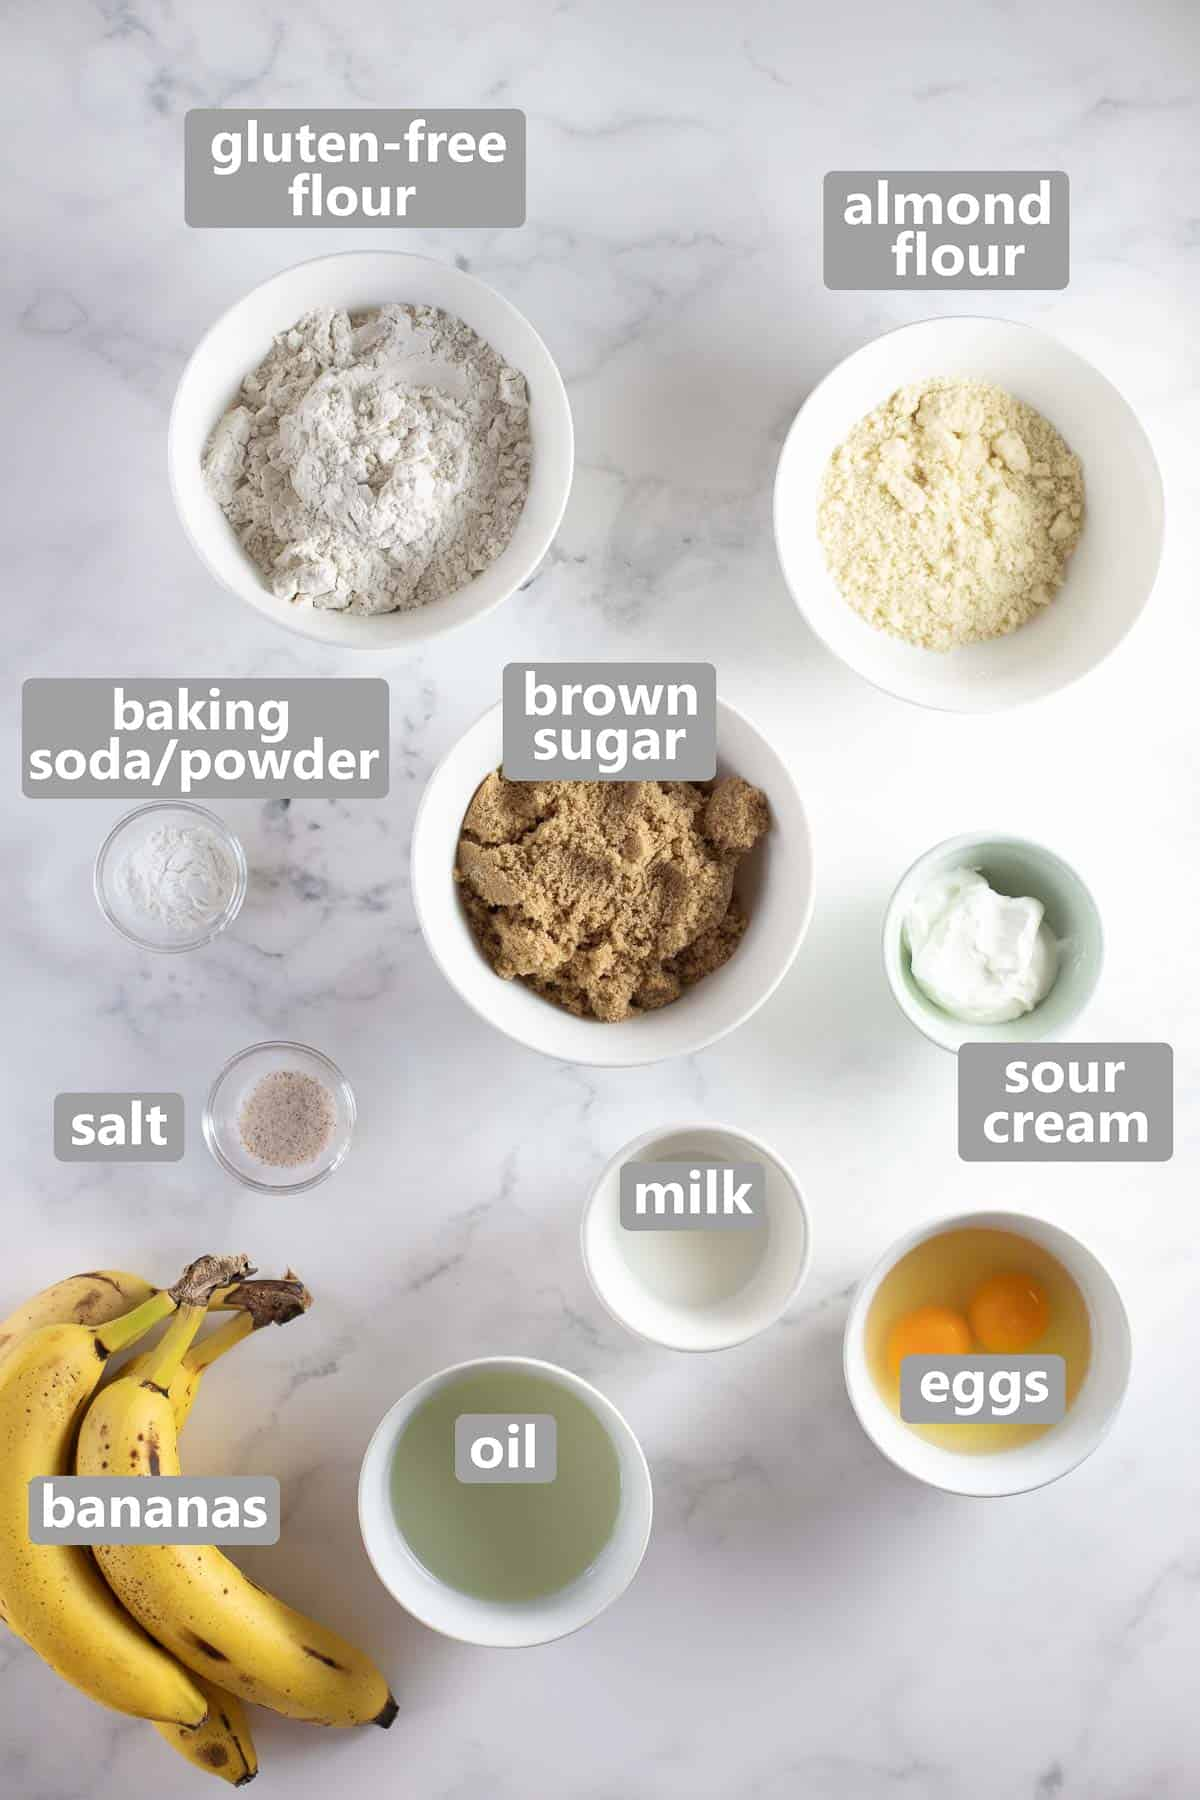 labeled bowls with ingredients for gluten-free banana muffins set out on marble background